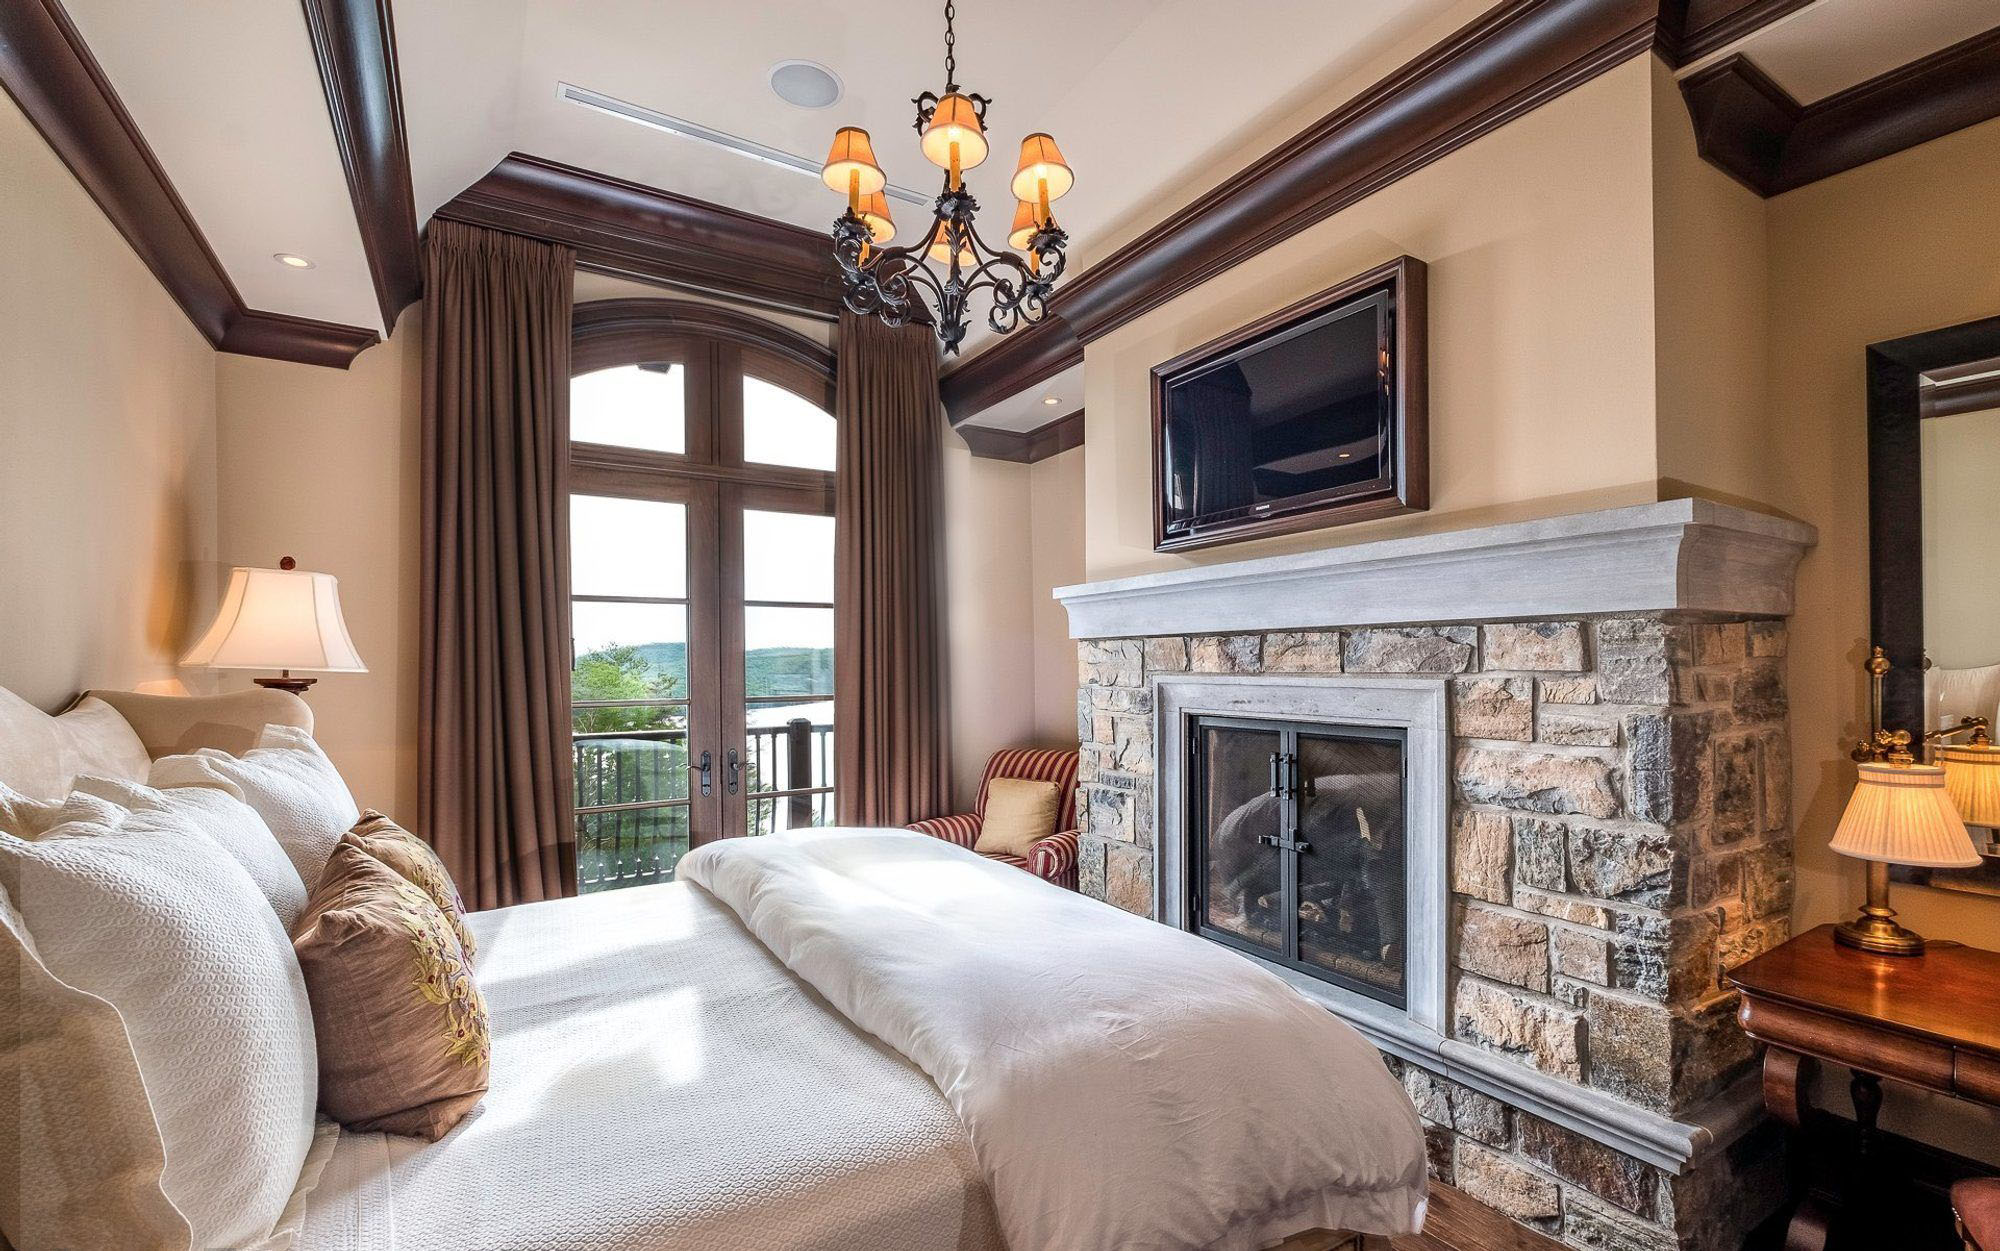 Small country style bedroom with a warm color scheme and a stone bedroom fireplace. bedroom fireplace ideas.